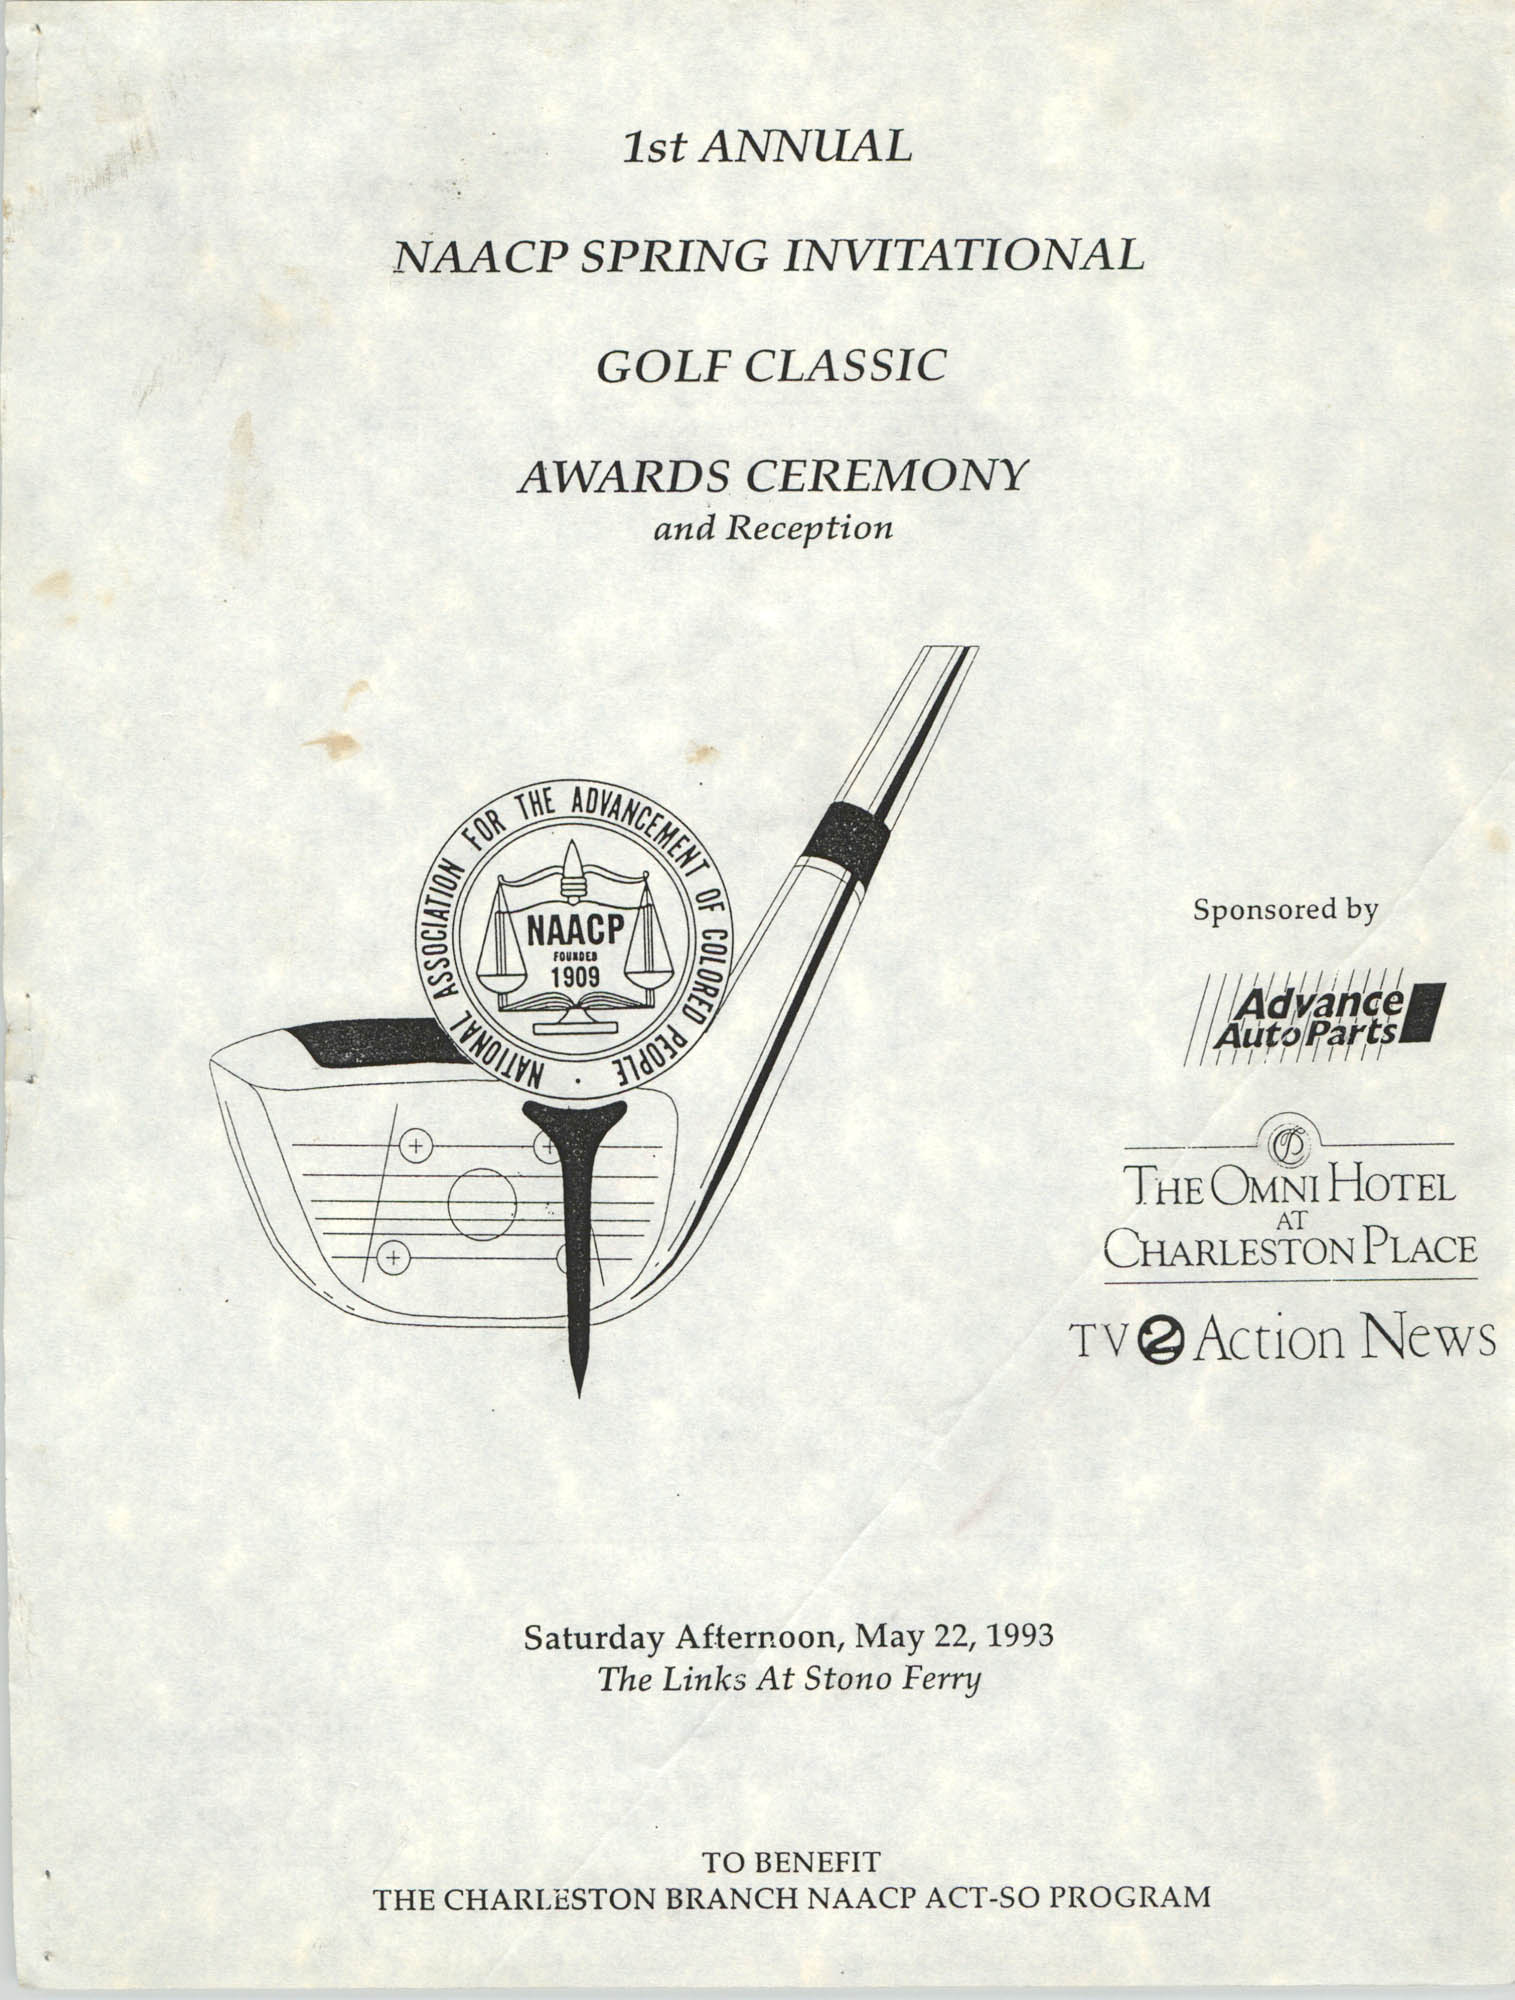 1st Annual NAACP Spring Invitational Golf Classic Awards Ceremony and Reception, NAACP, 1993, Cover Page